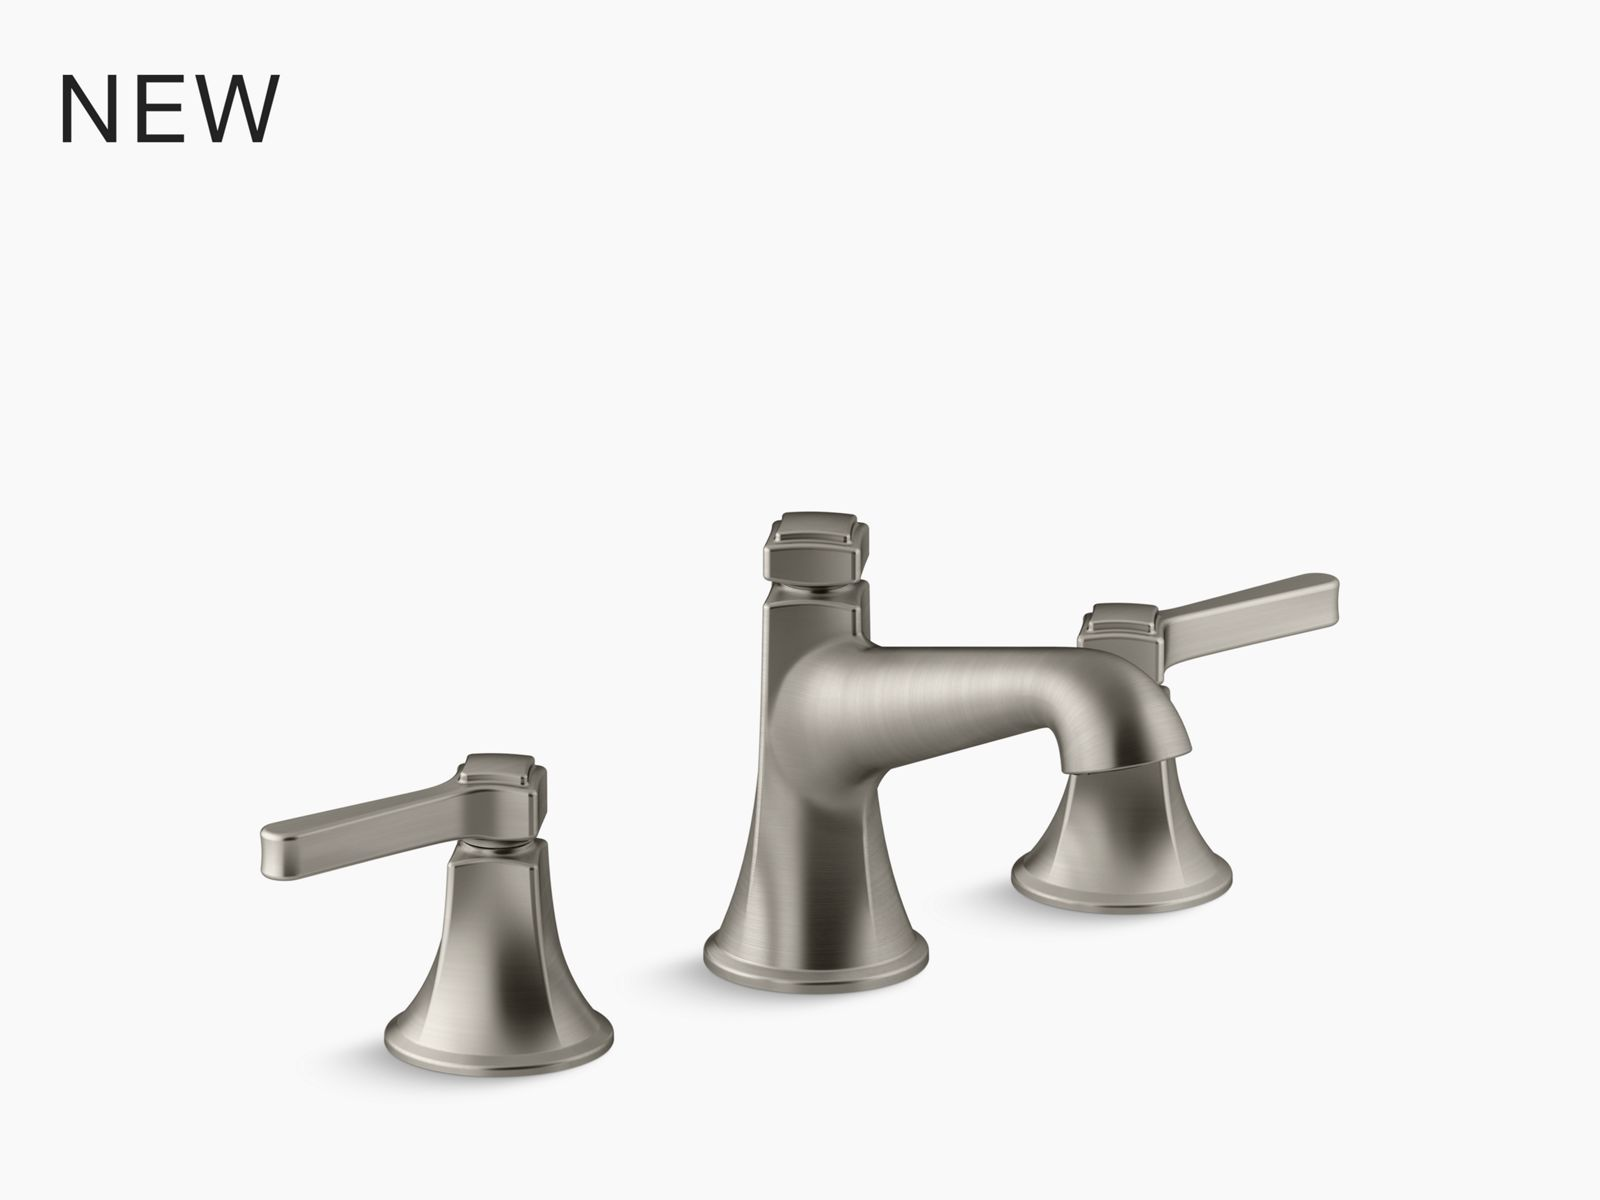 pinstripe pure widespread bathroom sink faucet with lever handles